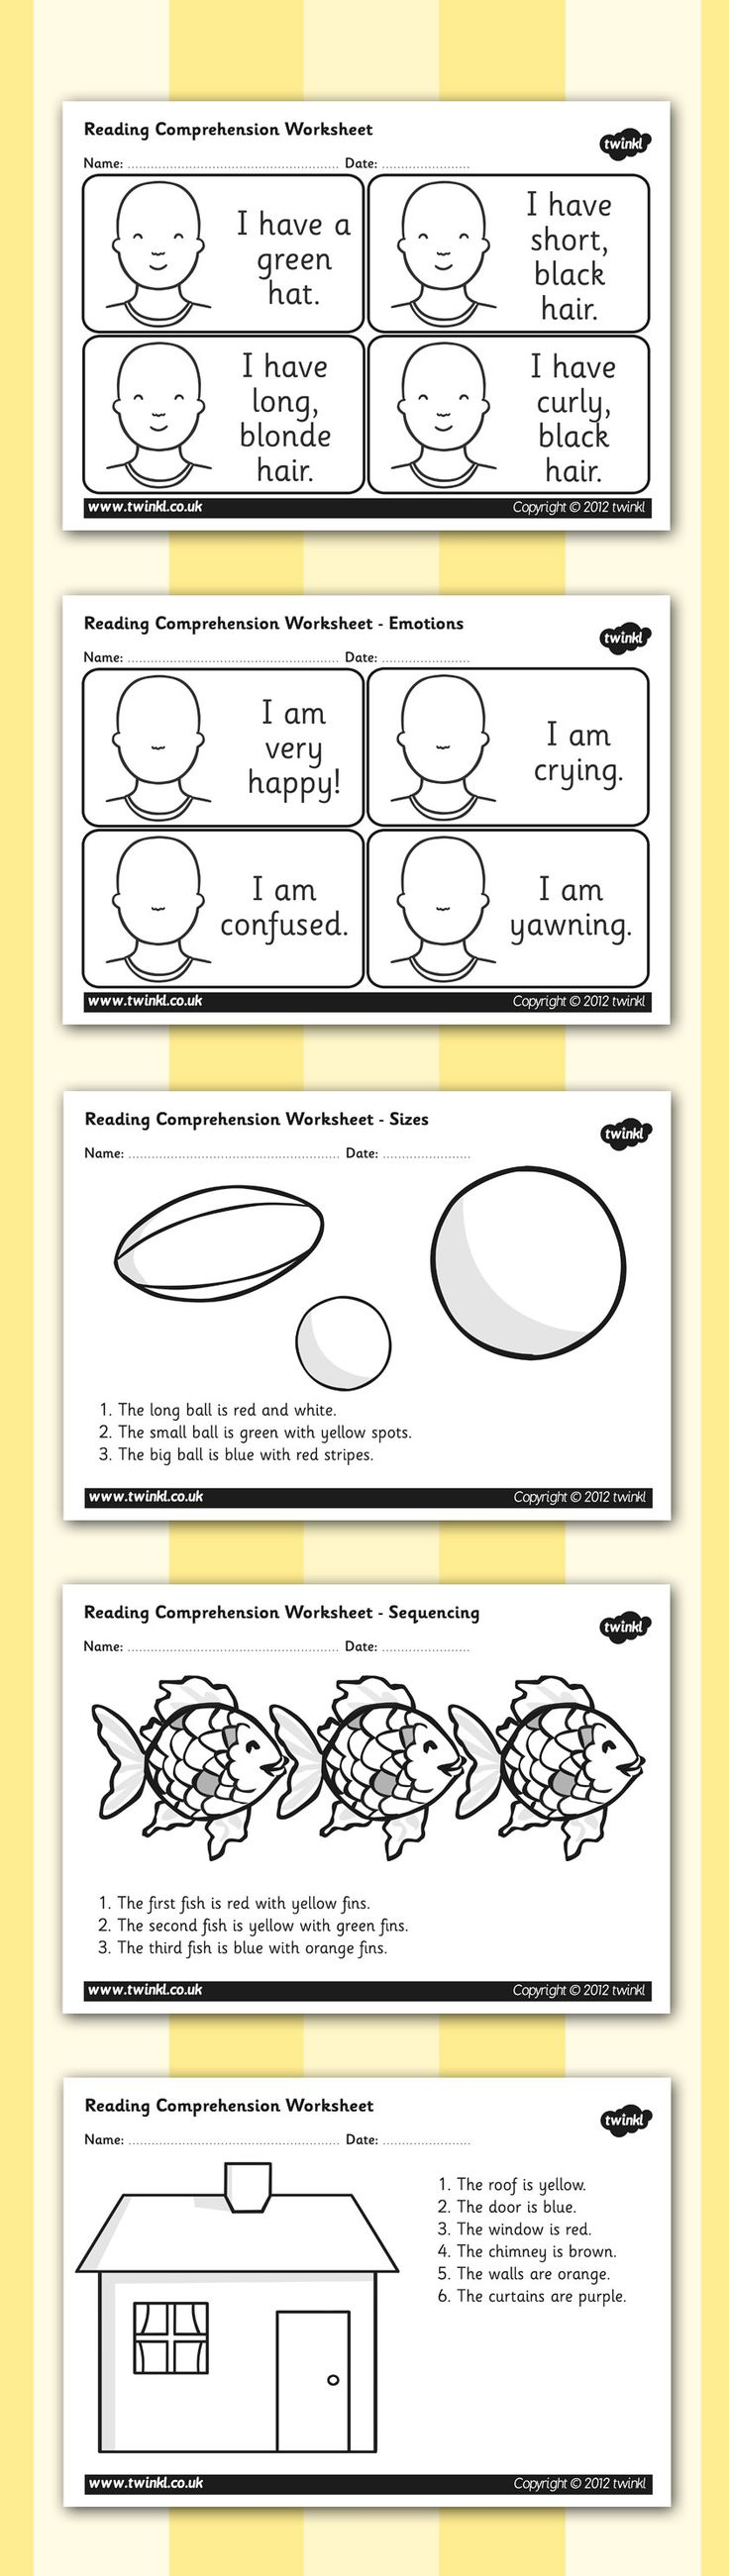 worksheet Reading Comprehension Worksheet 5th Grade 1000 ideas about comprehension worksheets on pinterest grade 1 twinkl resources reading higher ability printable for primary